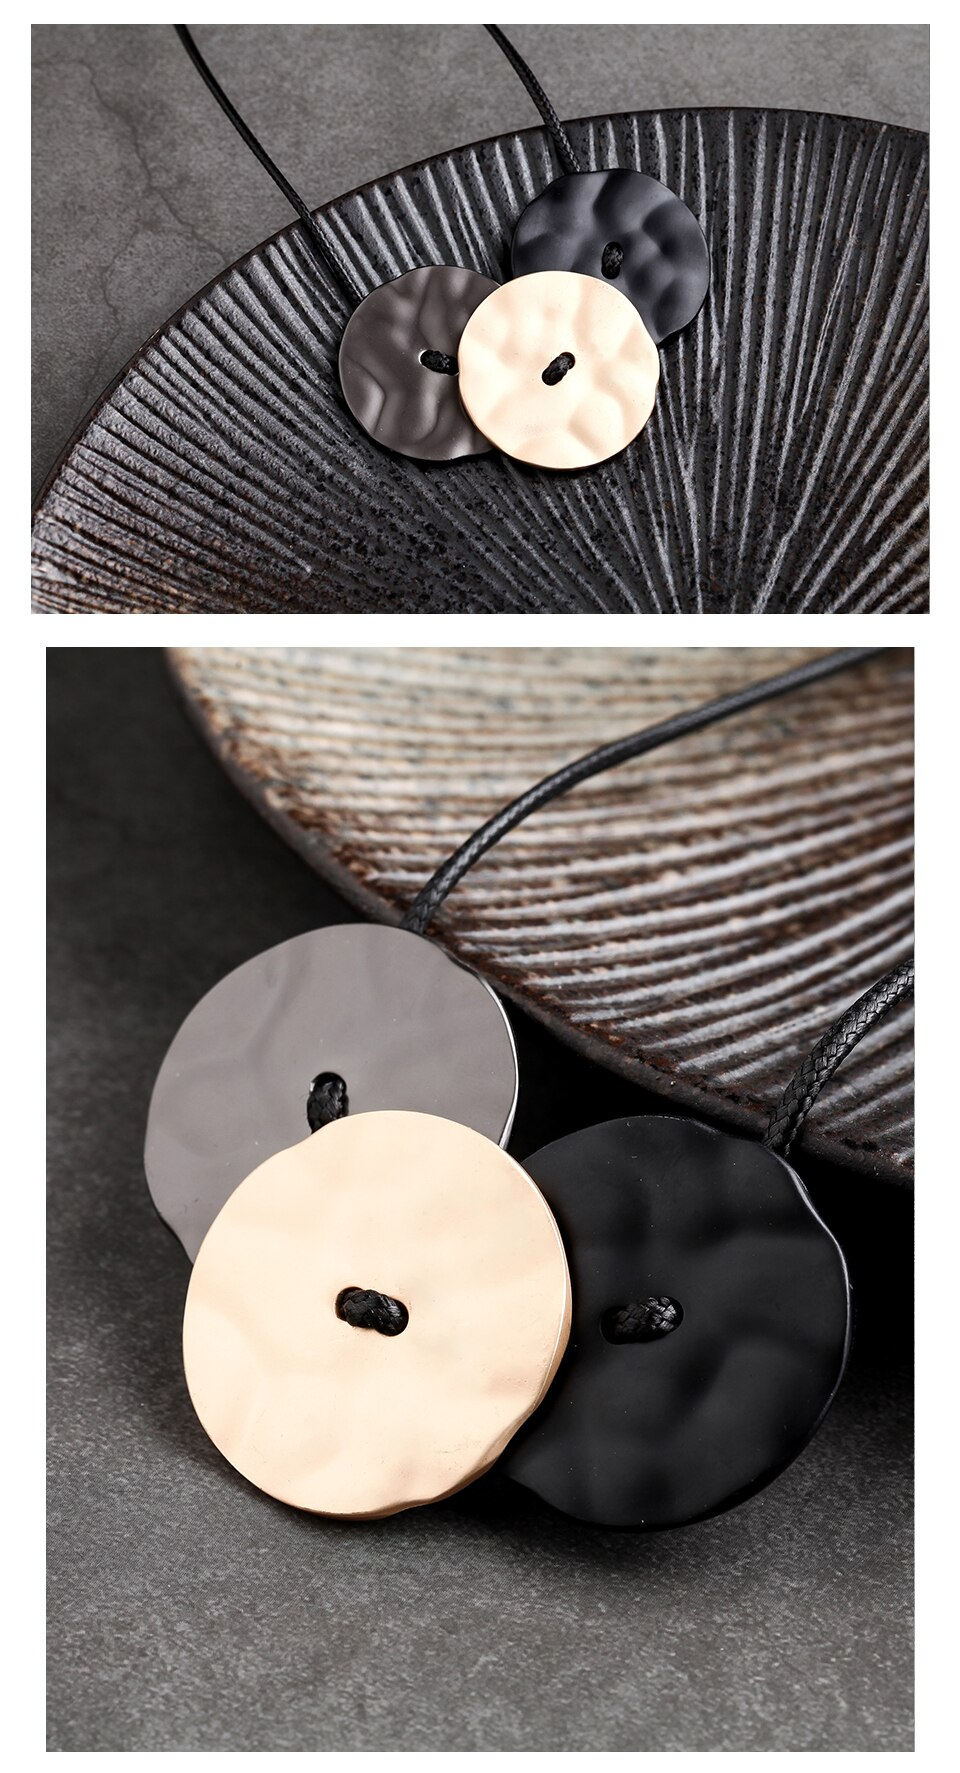 Trendy Jewelry for Women Long Necklace Rope Chain suspension jewellery collar necklaces & pendants Chokers 2020 New gift for Mum